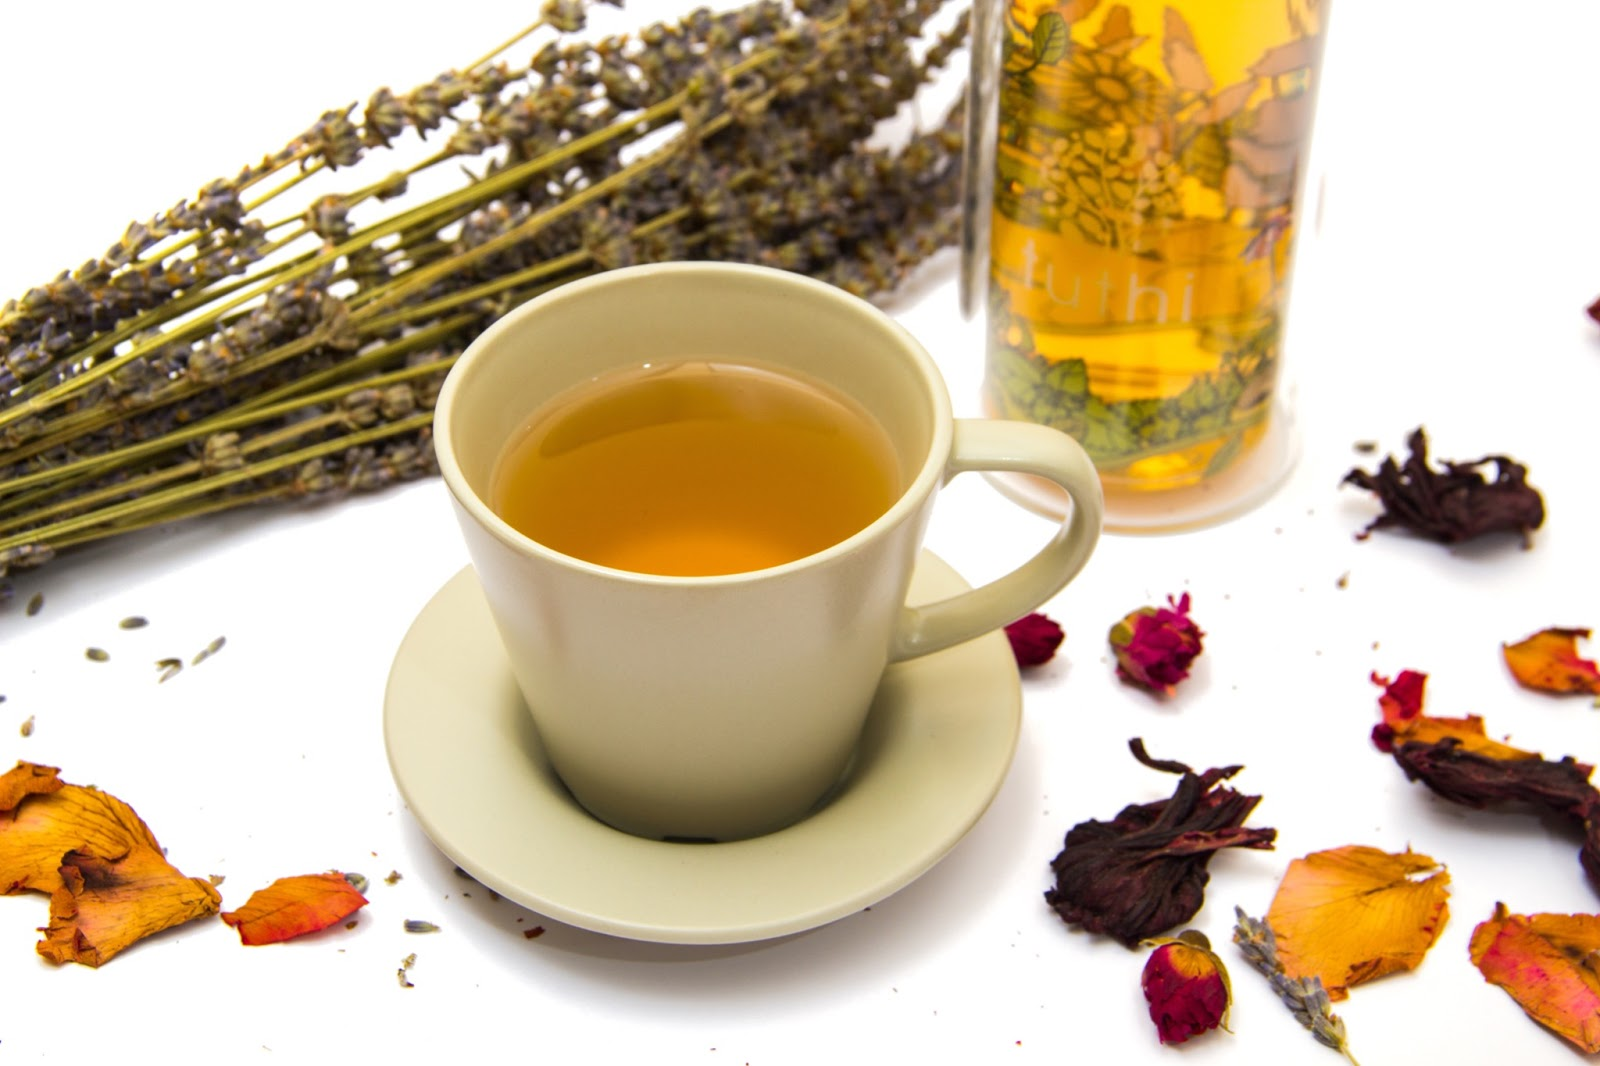 A cup of hot tea is placed in a white mug on a white table, it is surrounded by dried flowers.